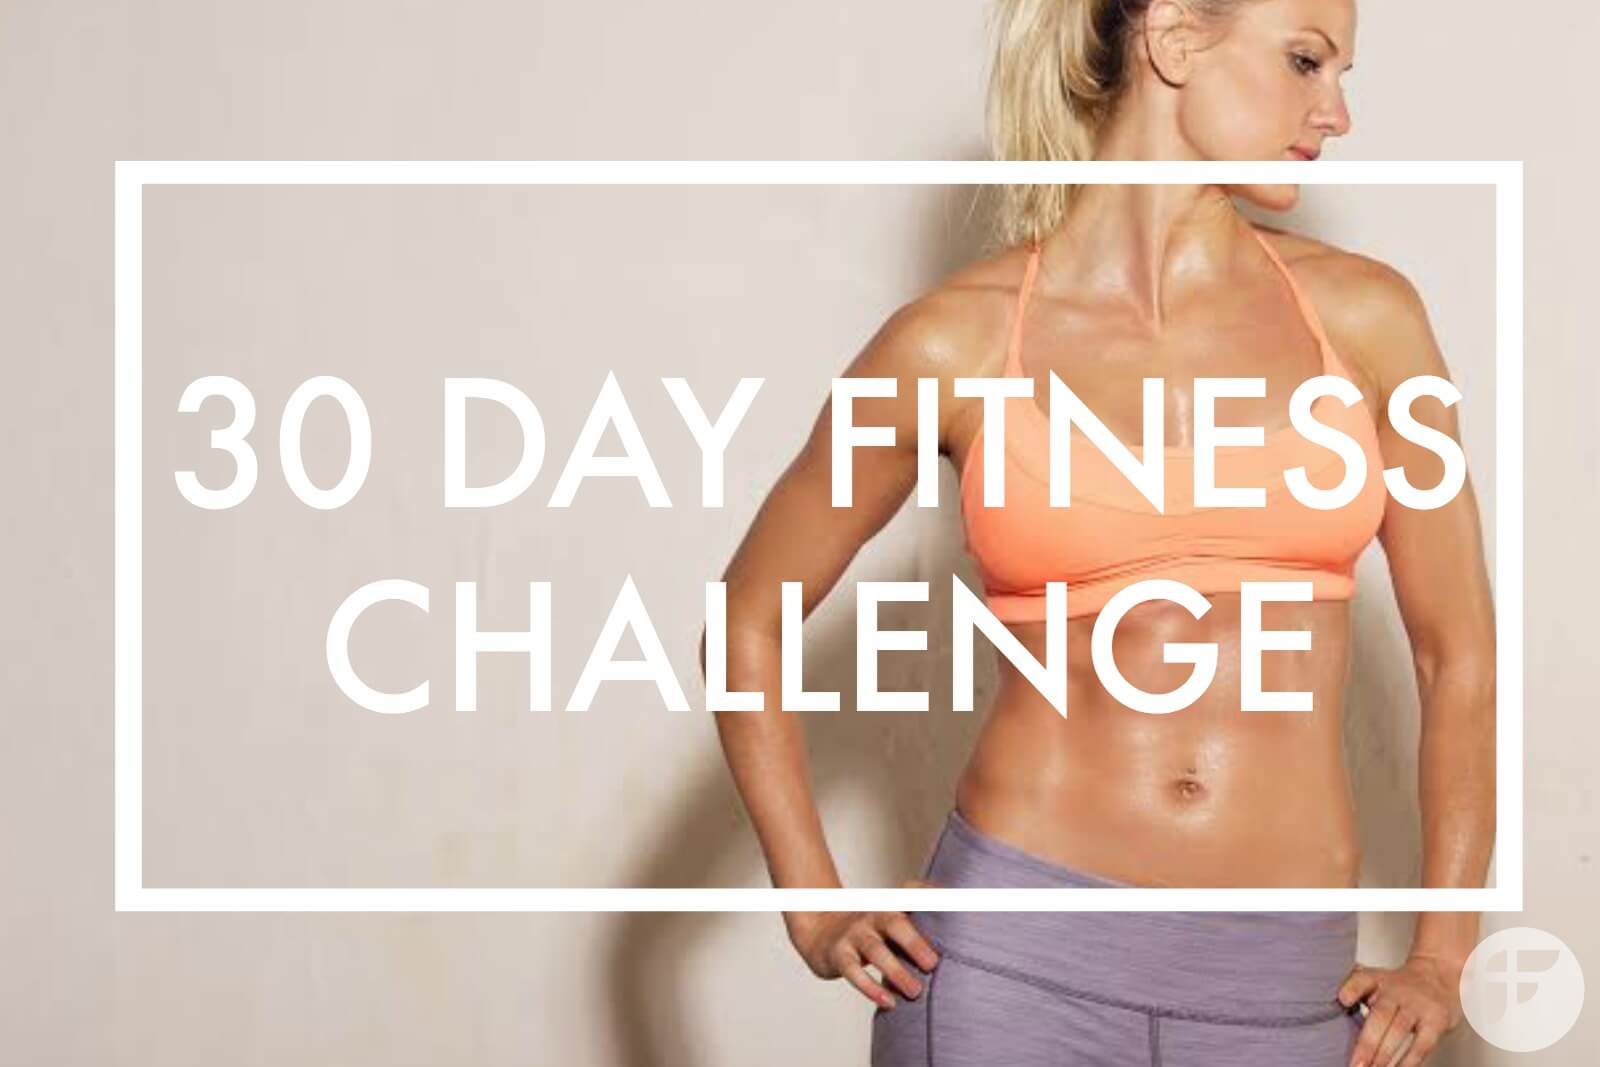 30-day-fitness-challenge-lose-weight